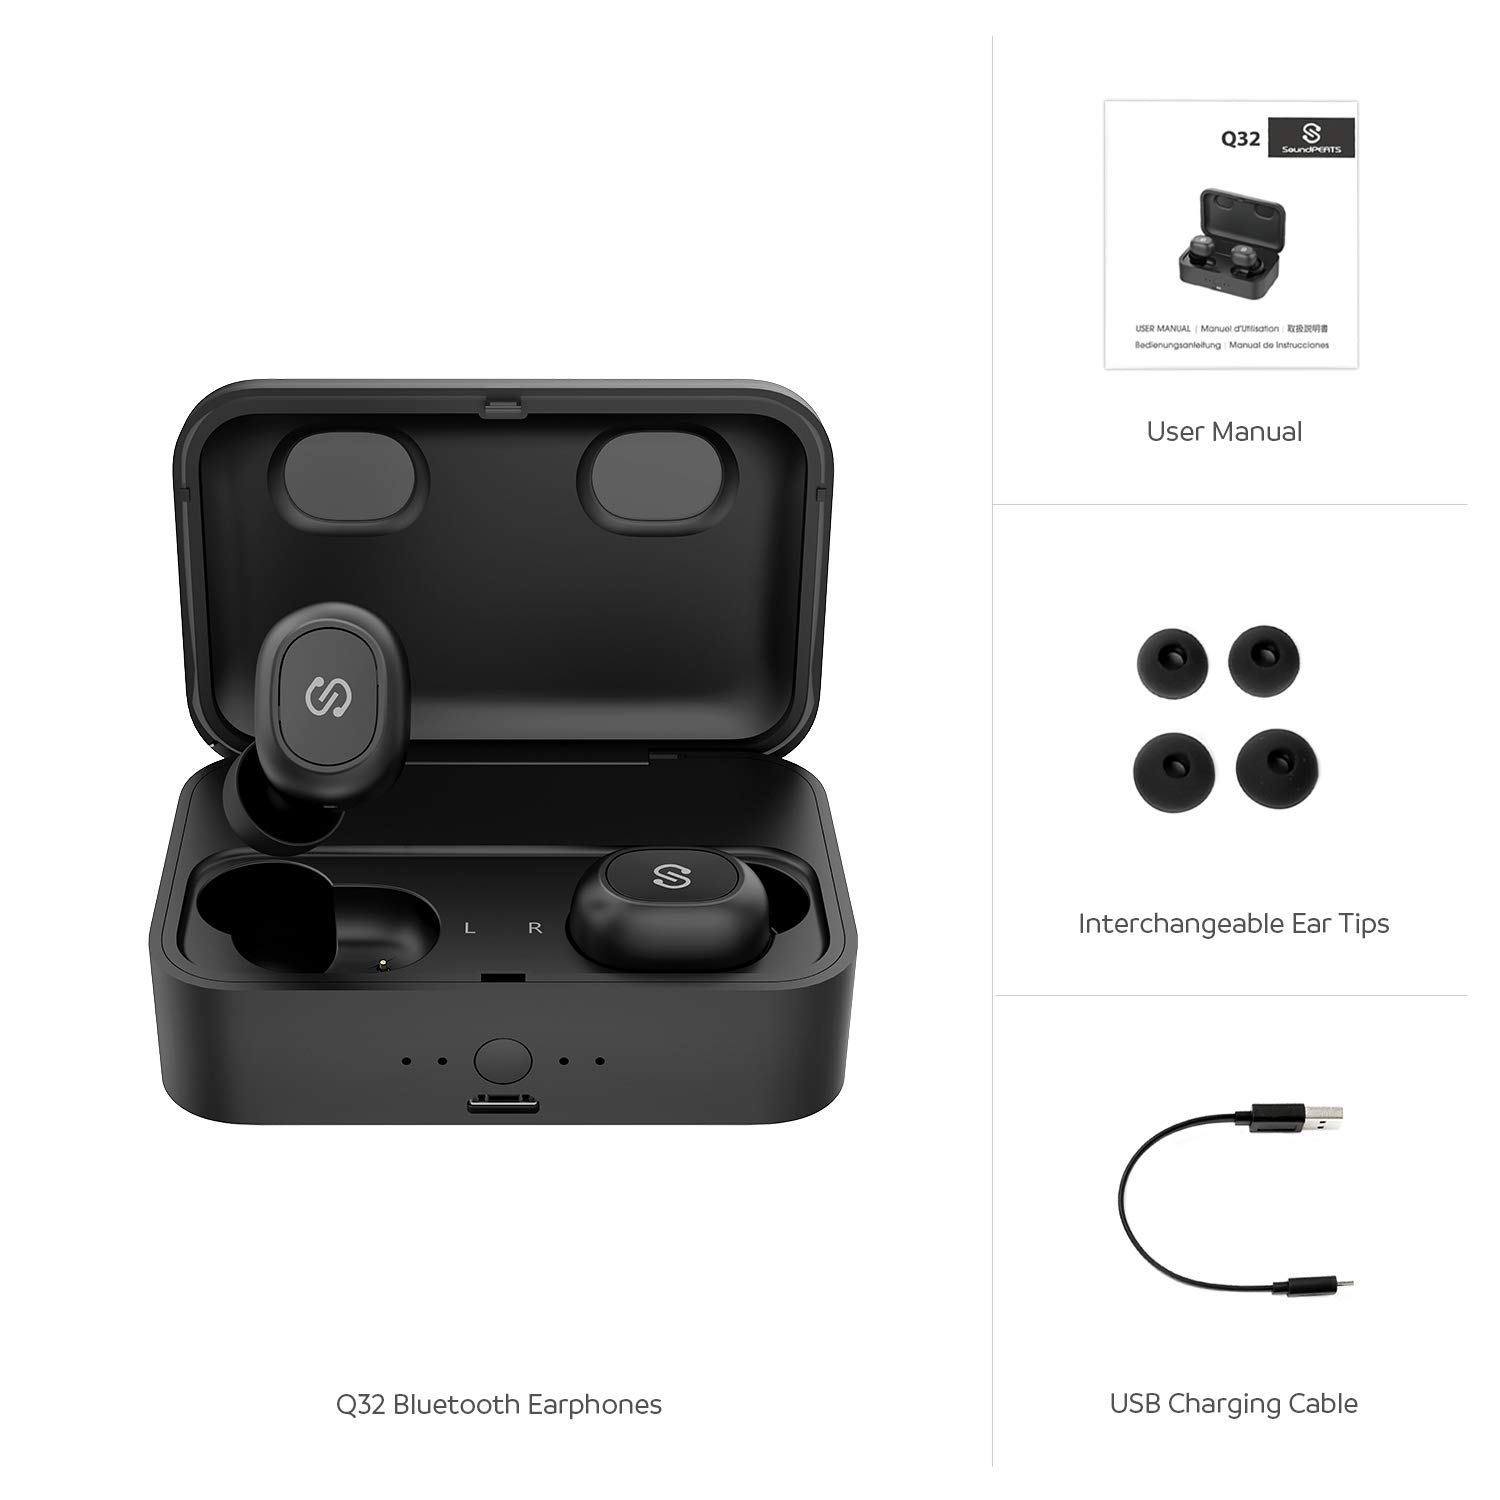 SoundPEATS True Wireless Bluetooth Earbuds in-Ear Stereo TWS Bluetooth Headphones Wireless Earphones (Bluetooth 5.0, 2600mAh Charging Case, 55 Hours Playtime, Built-in Mic) by SoundPEATS (Image #8)